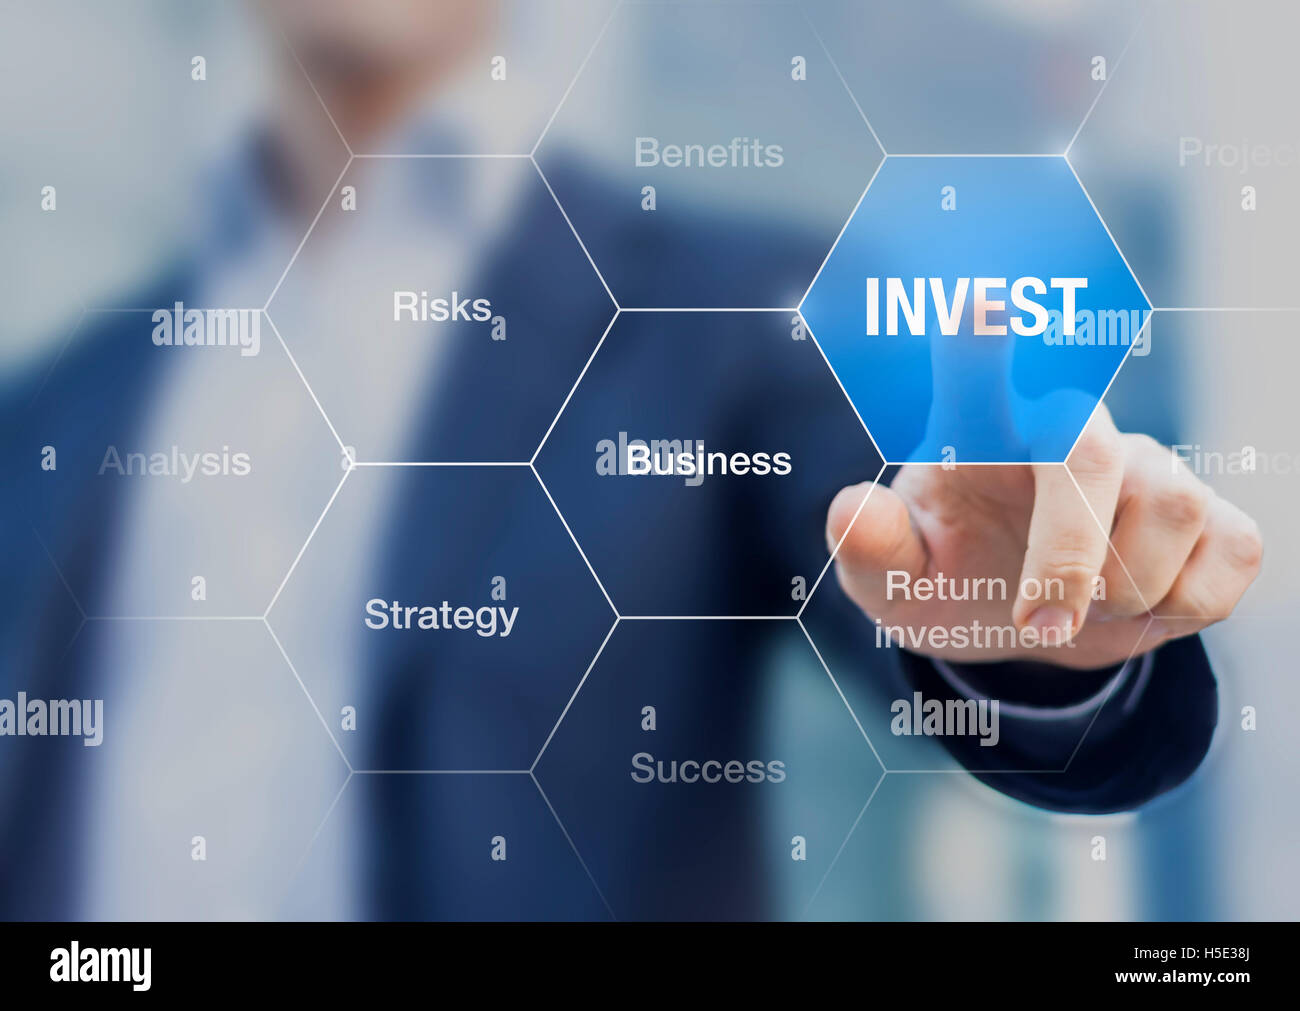 Teacher presenting investment strategy and benefits to become a successful business investor - Stock Image